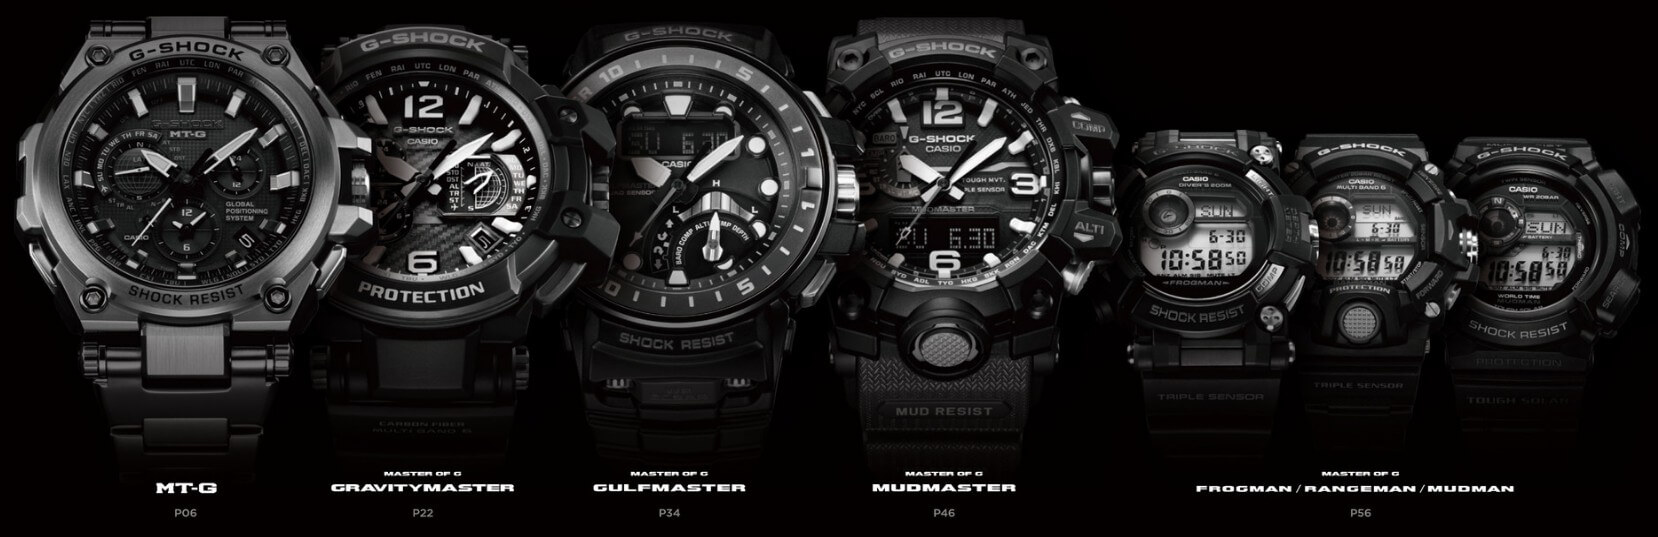 casio-g-shock-3.jpg